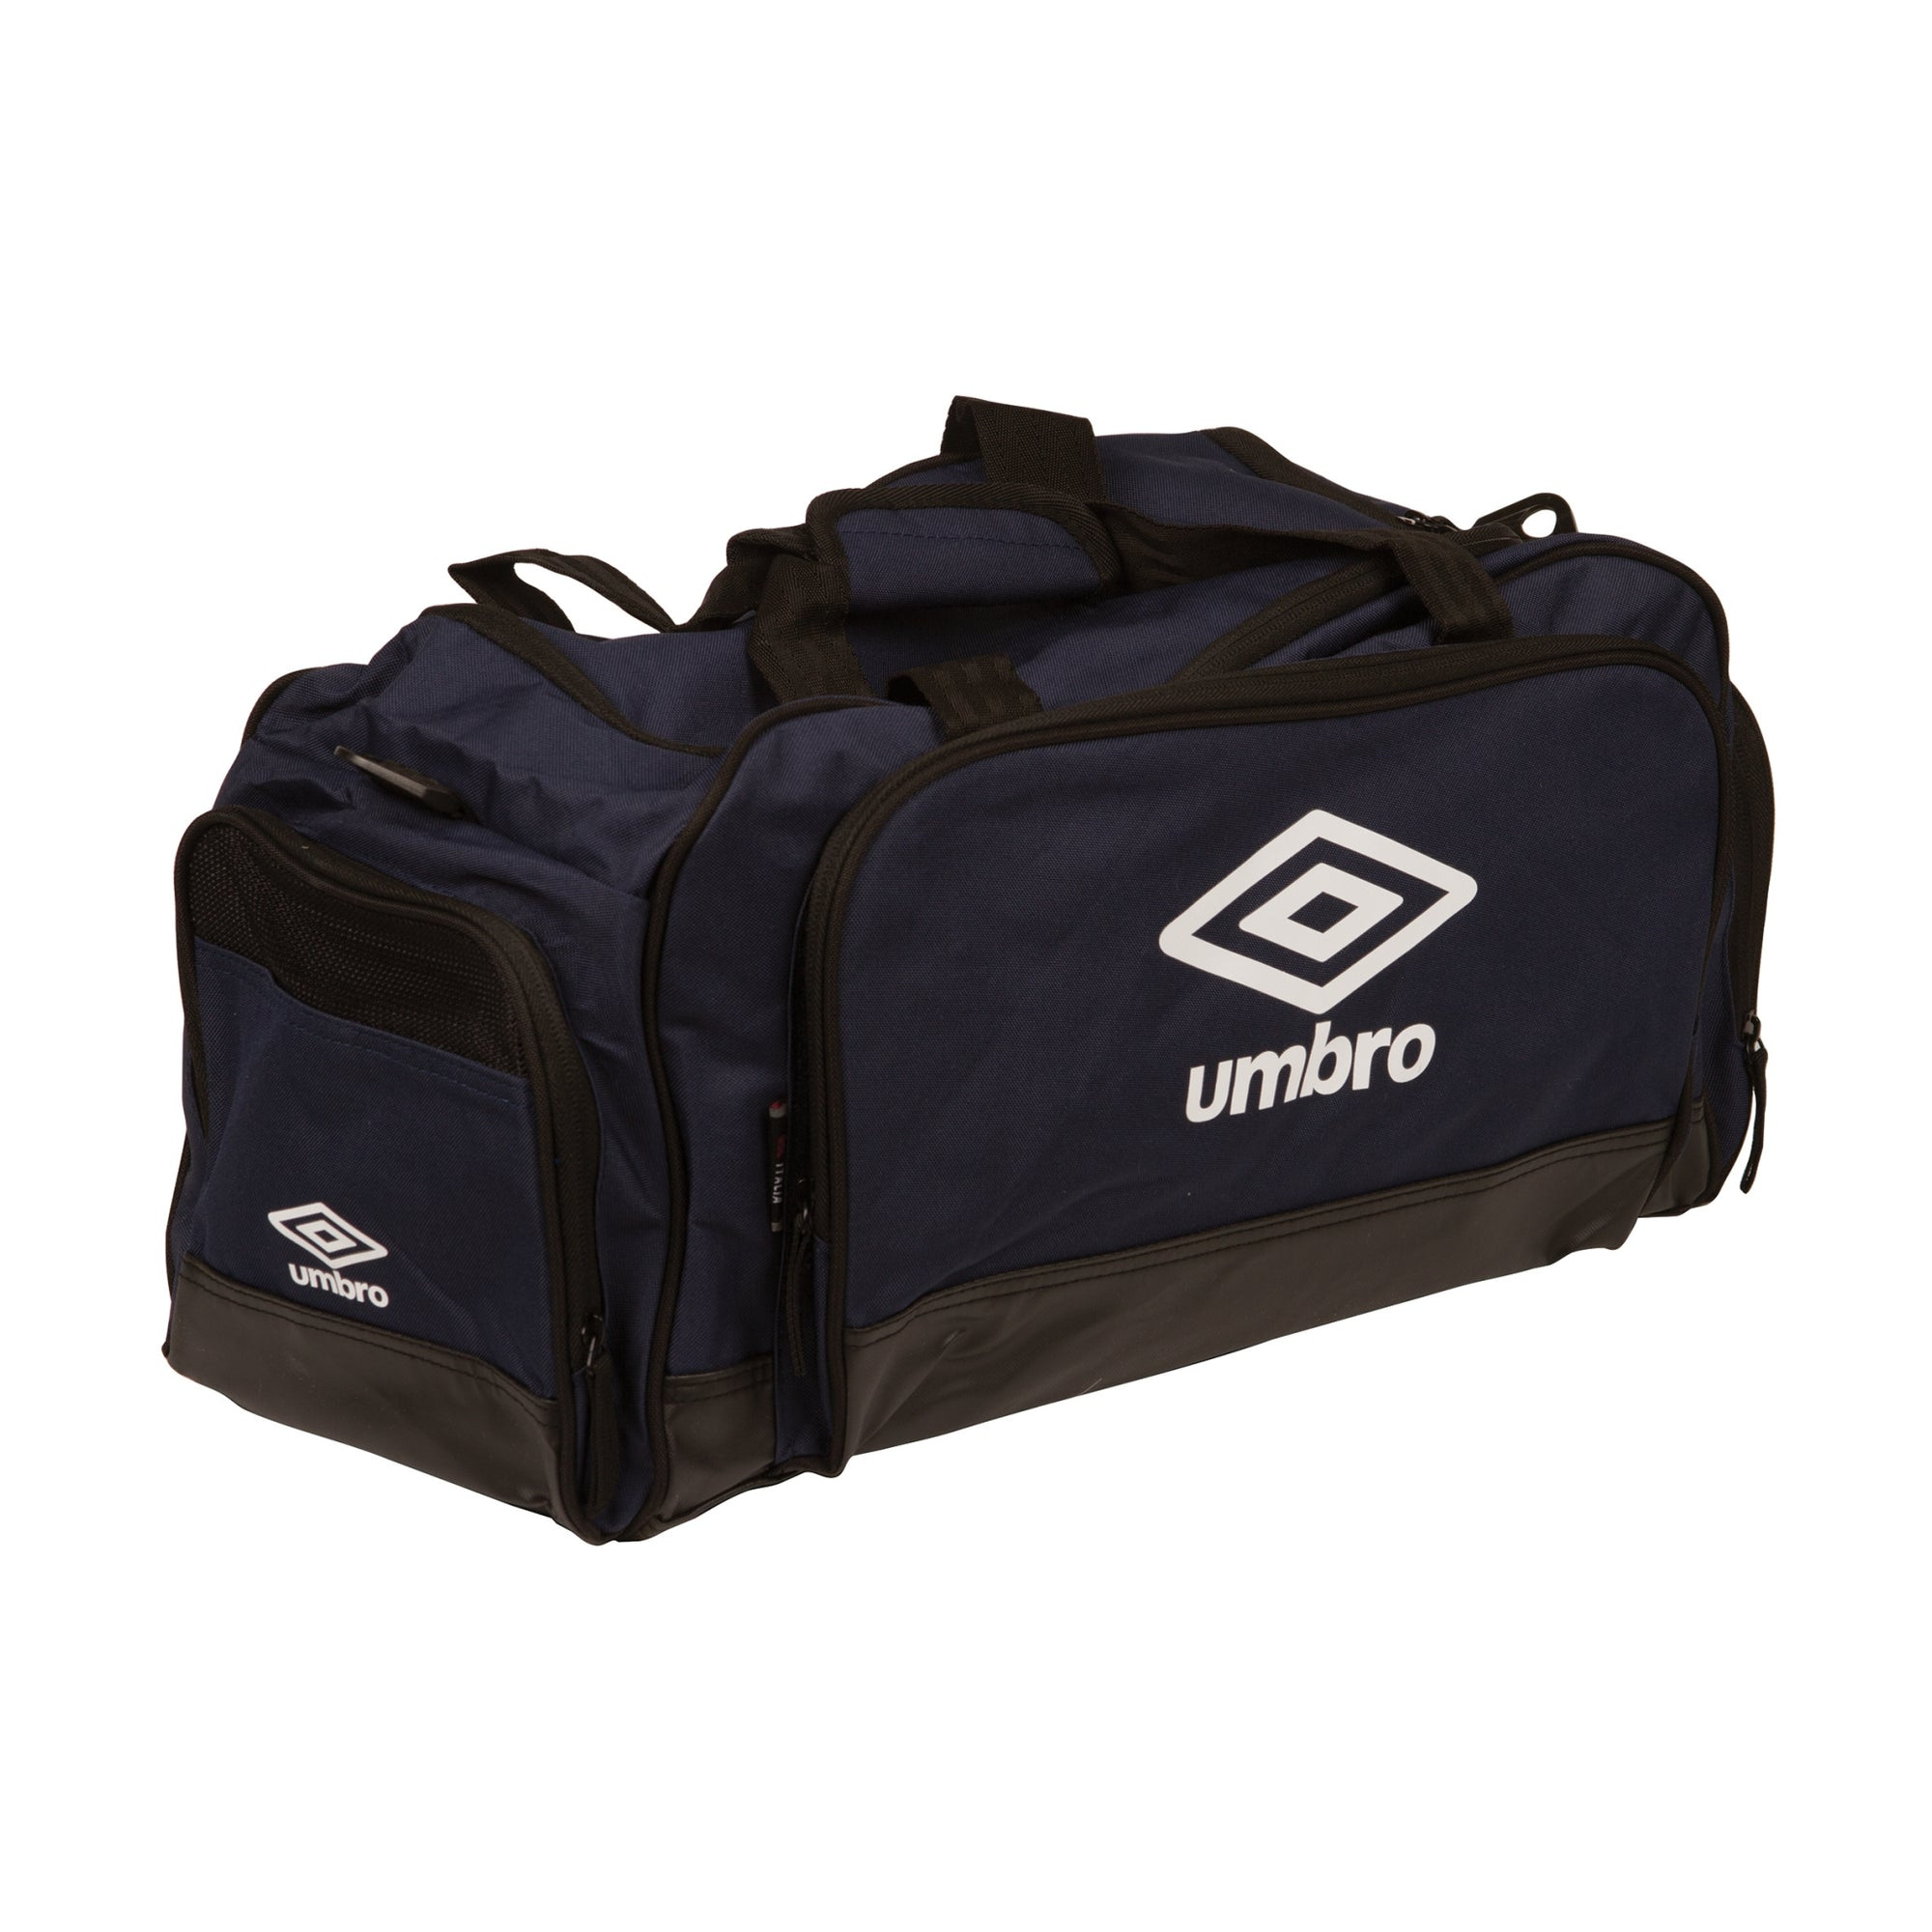 Umbro Medium Holdall - Dark Navy/White